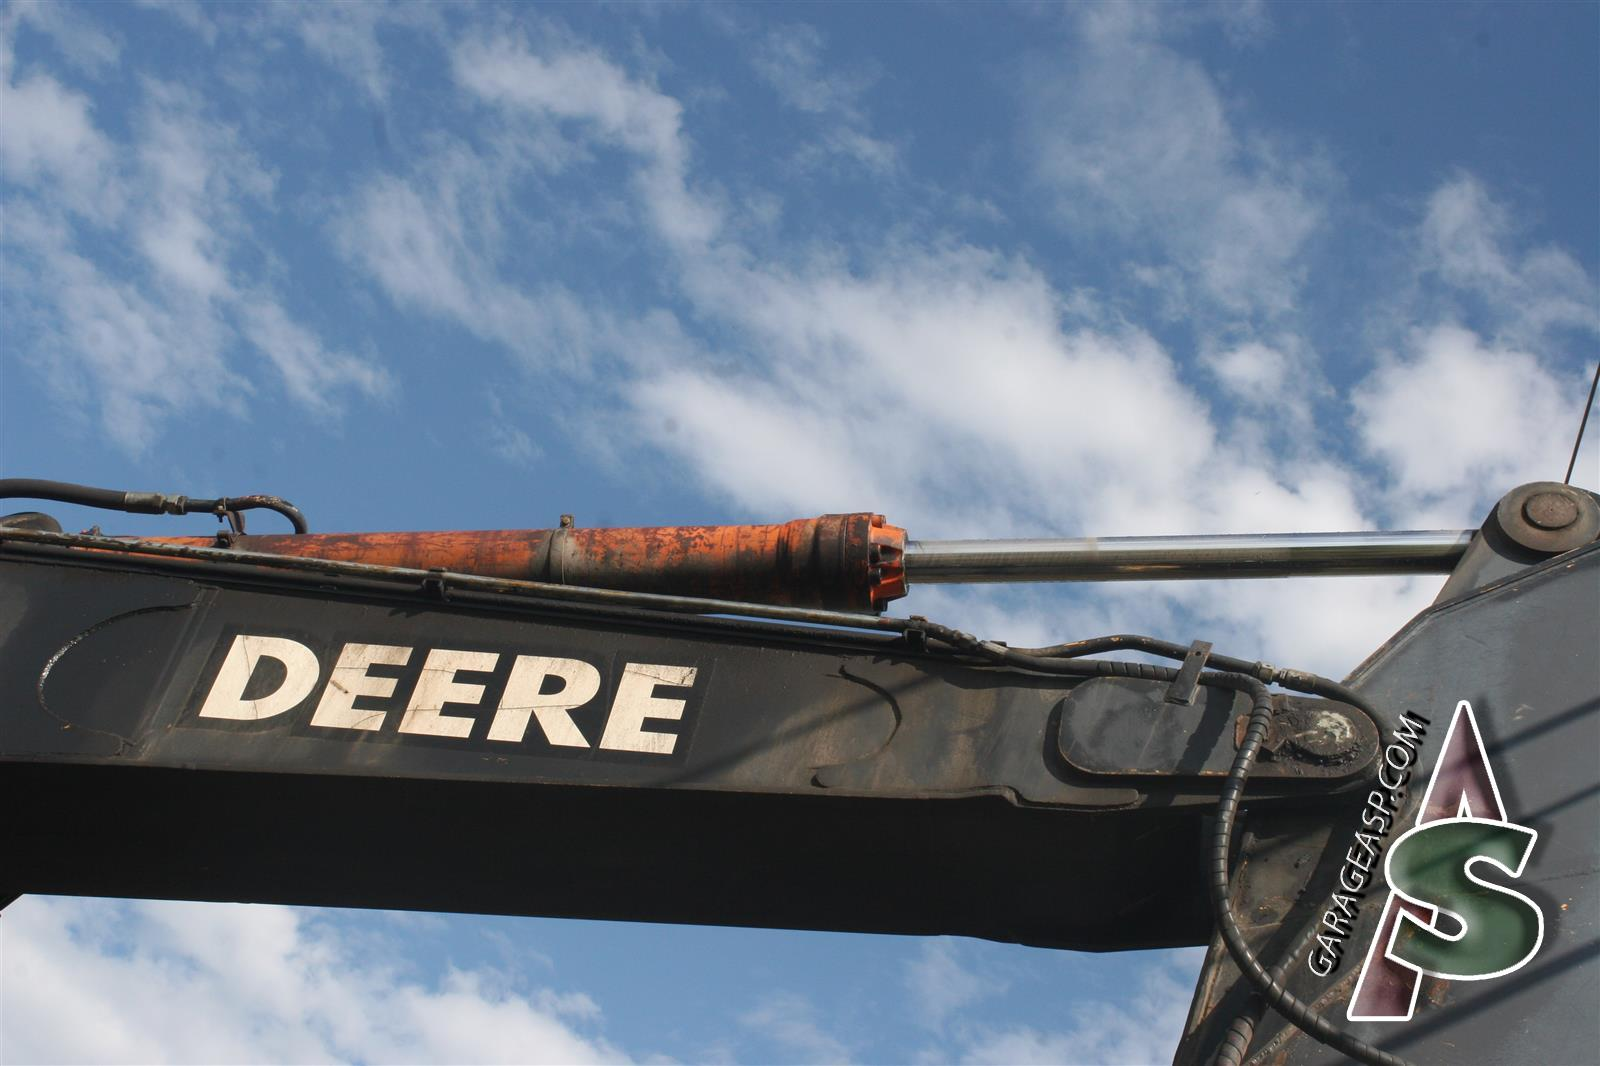 Deere Hydraulic Cylinders - Heavy equipment parts